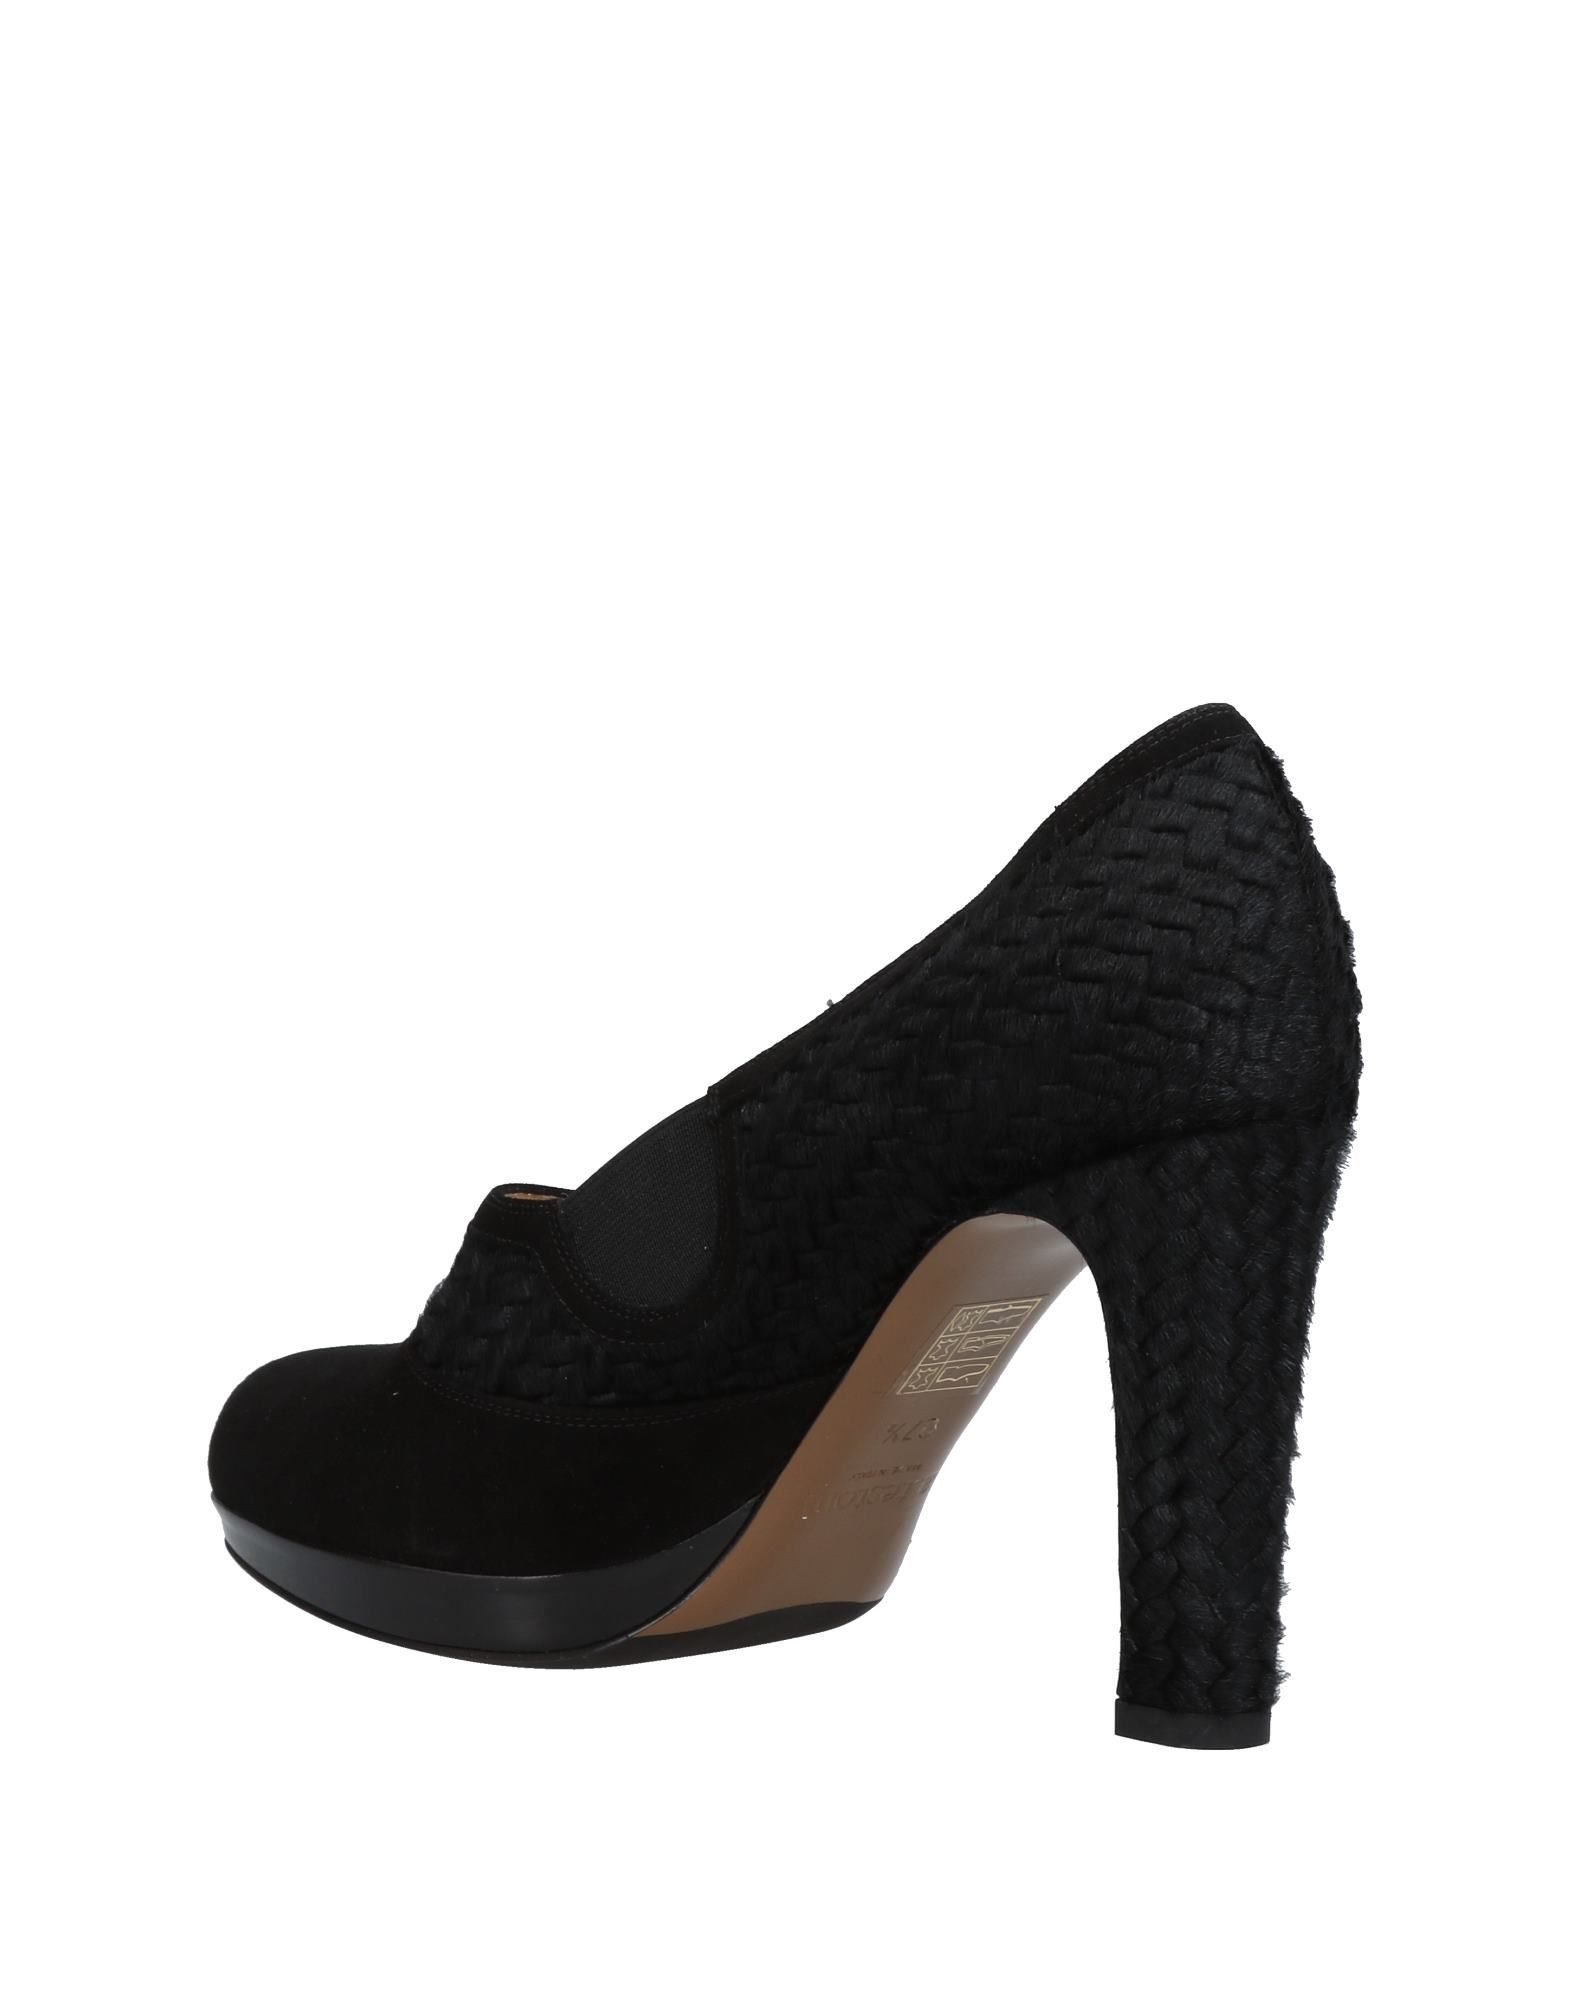 A.Testoni Black Leather Heels